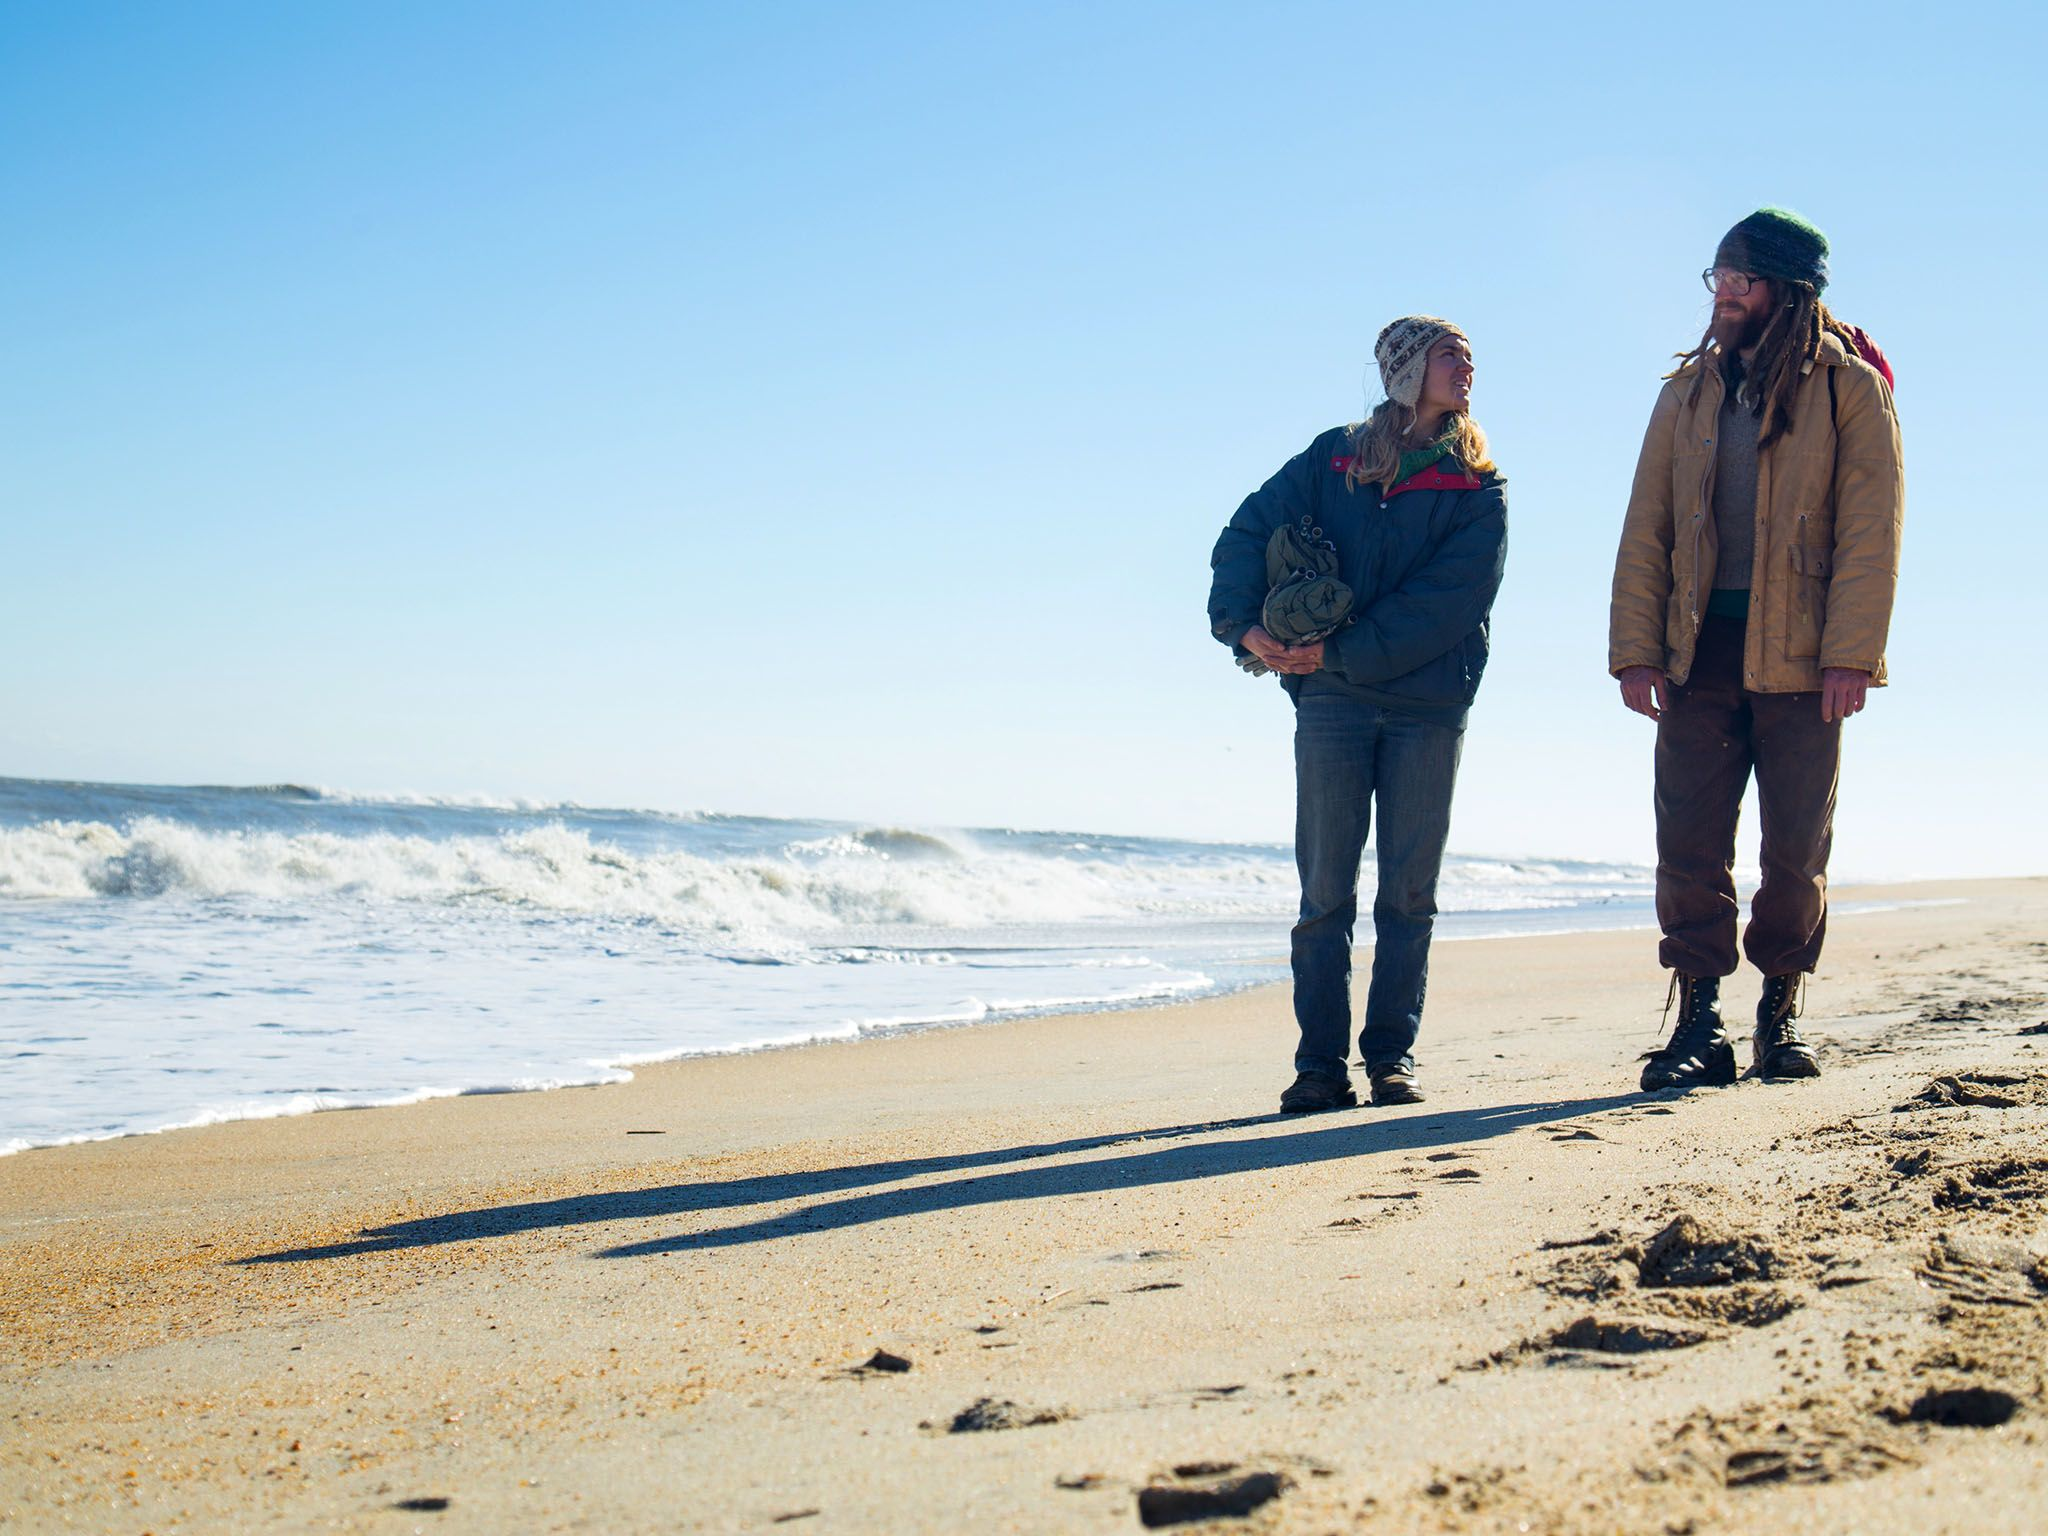 Cape Hatteras, N.C.: Tony and Amelia looking at each other on the beach. This image is from Live... [Photo of the day - 十月 2016]